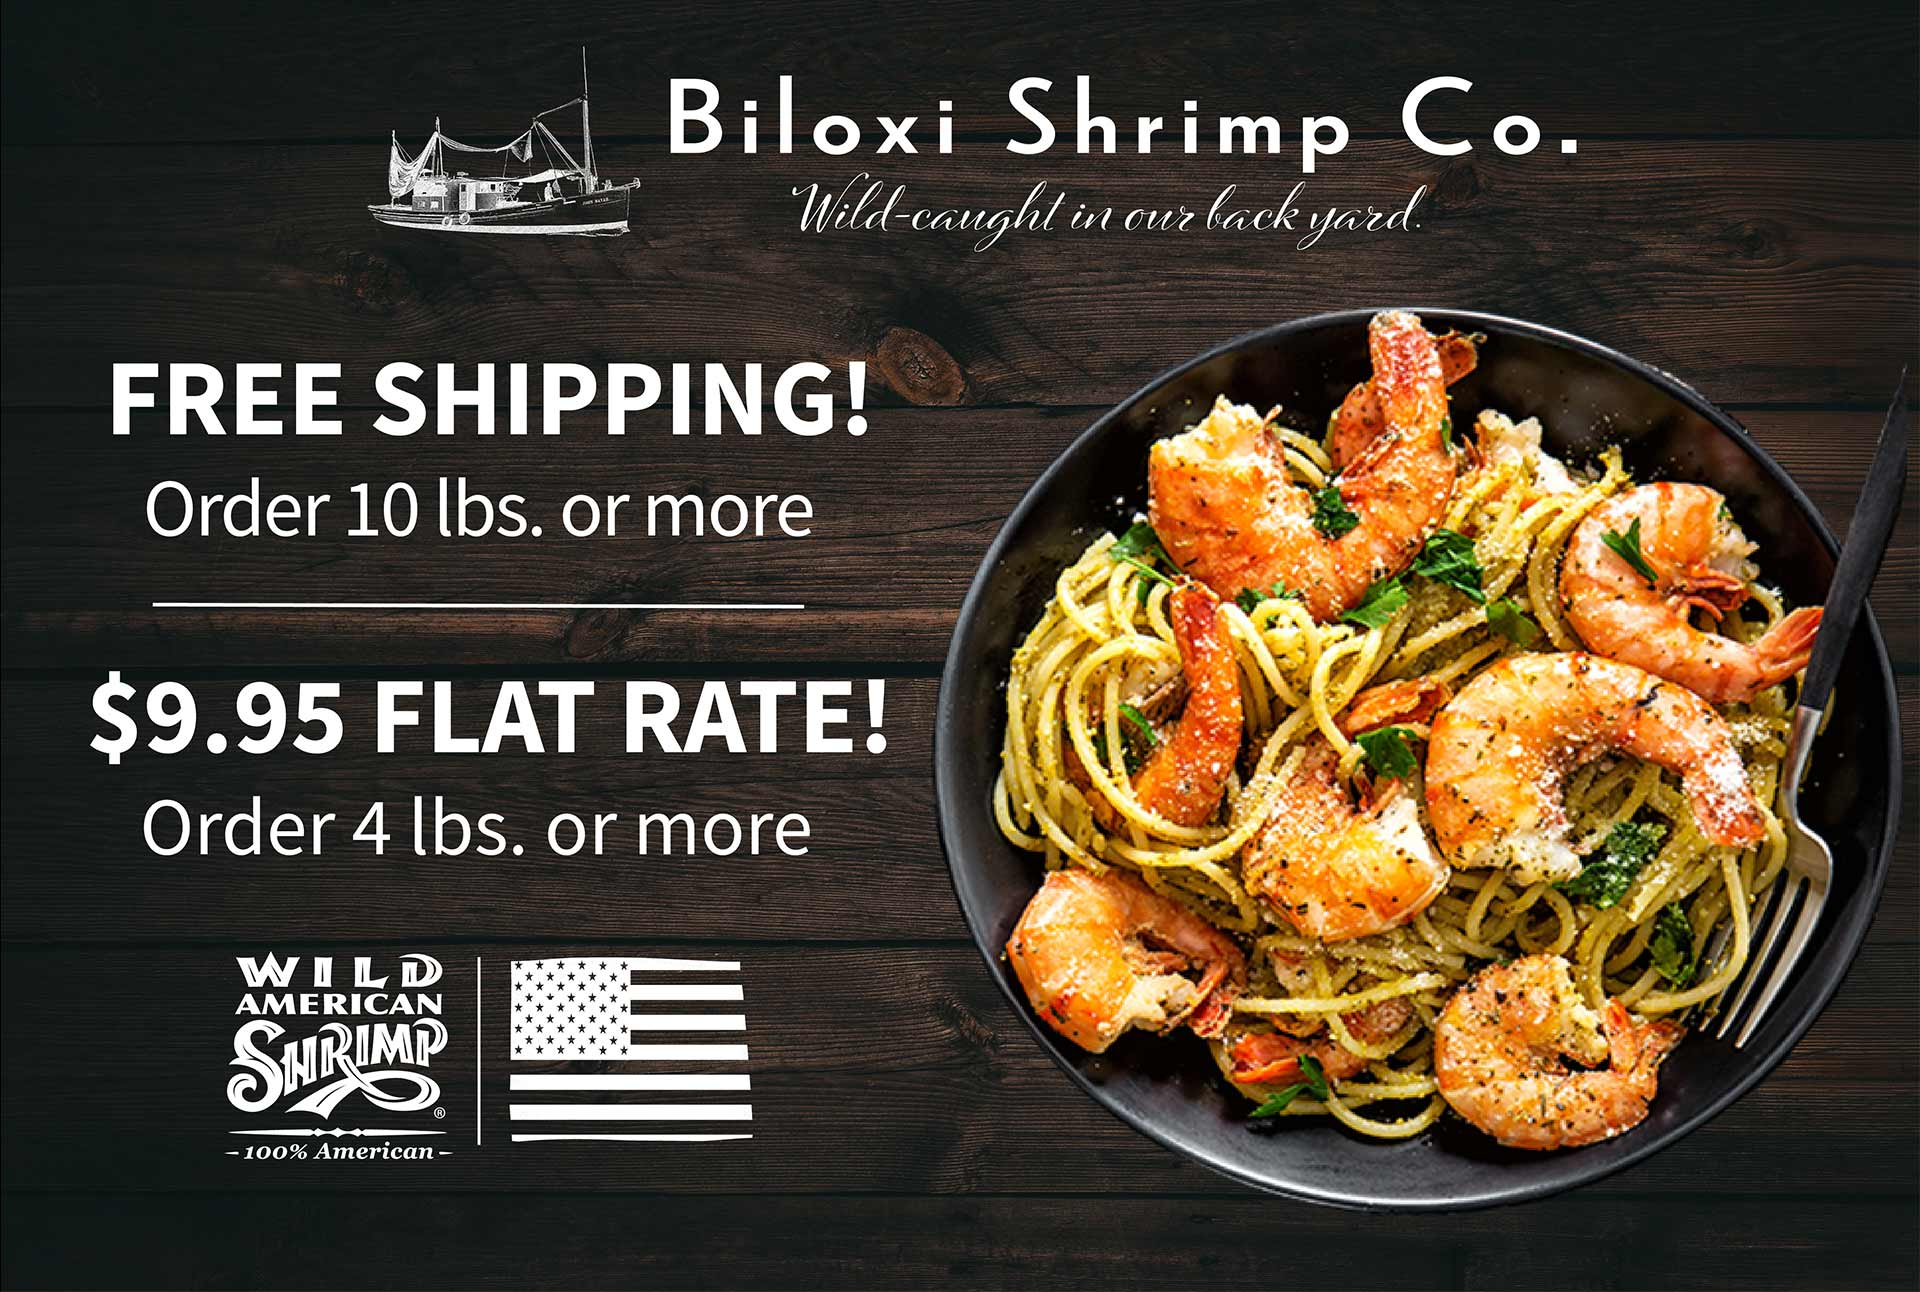 Free Shipping on orders 10lbs or more